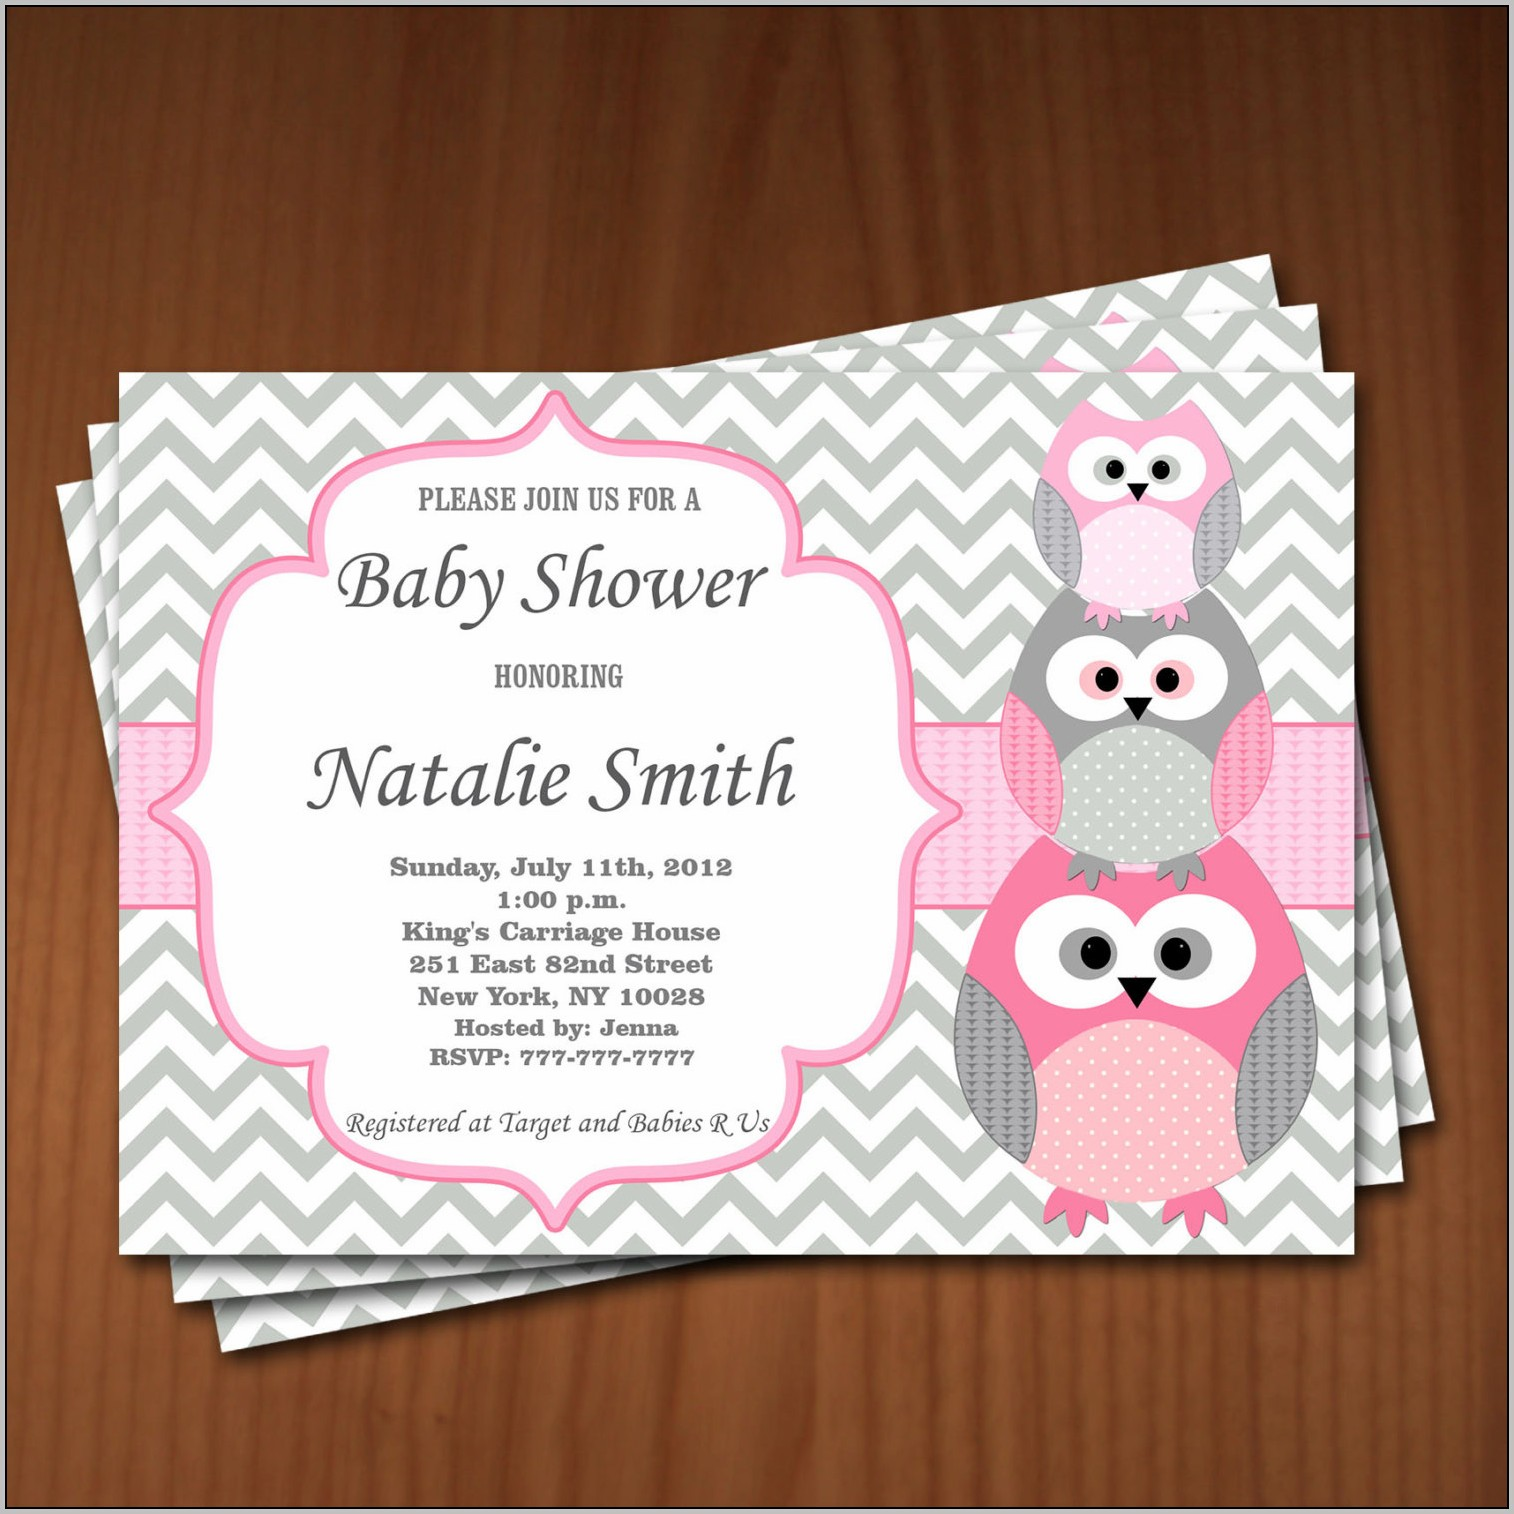 Affordable Baby Shower Invitations